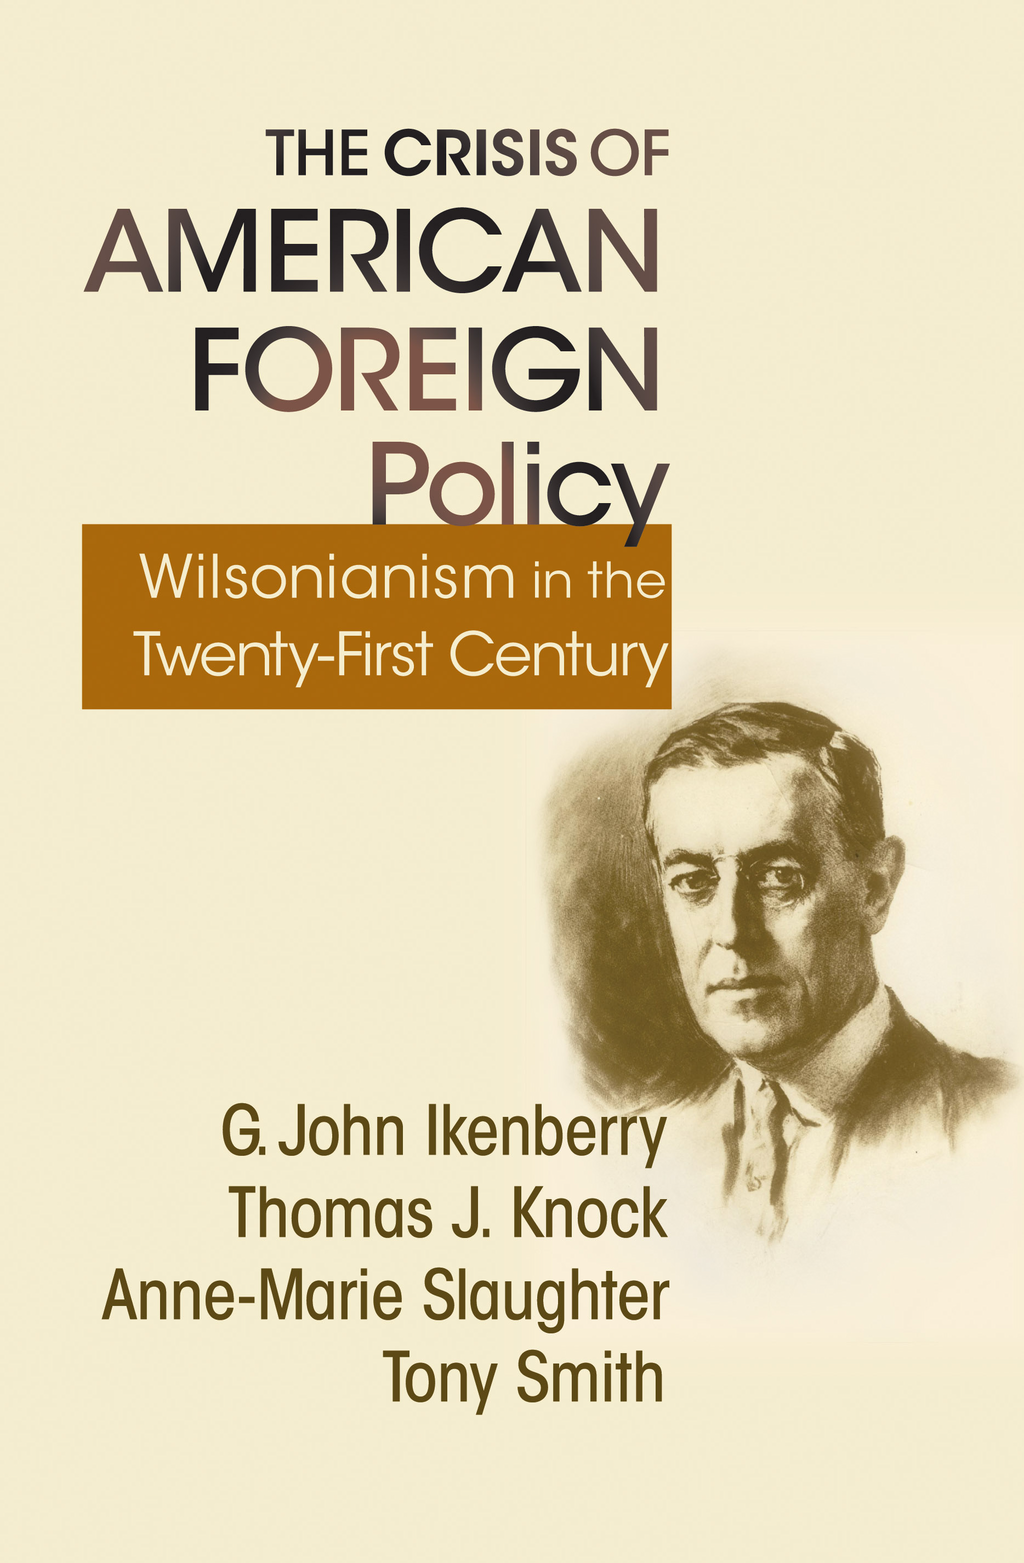 The Crisis of American Foreign Policy By: Anne-Marie Slaughter,G. John Ikenberry,Thomas J. Knock,Tony Smith